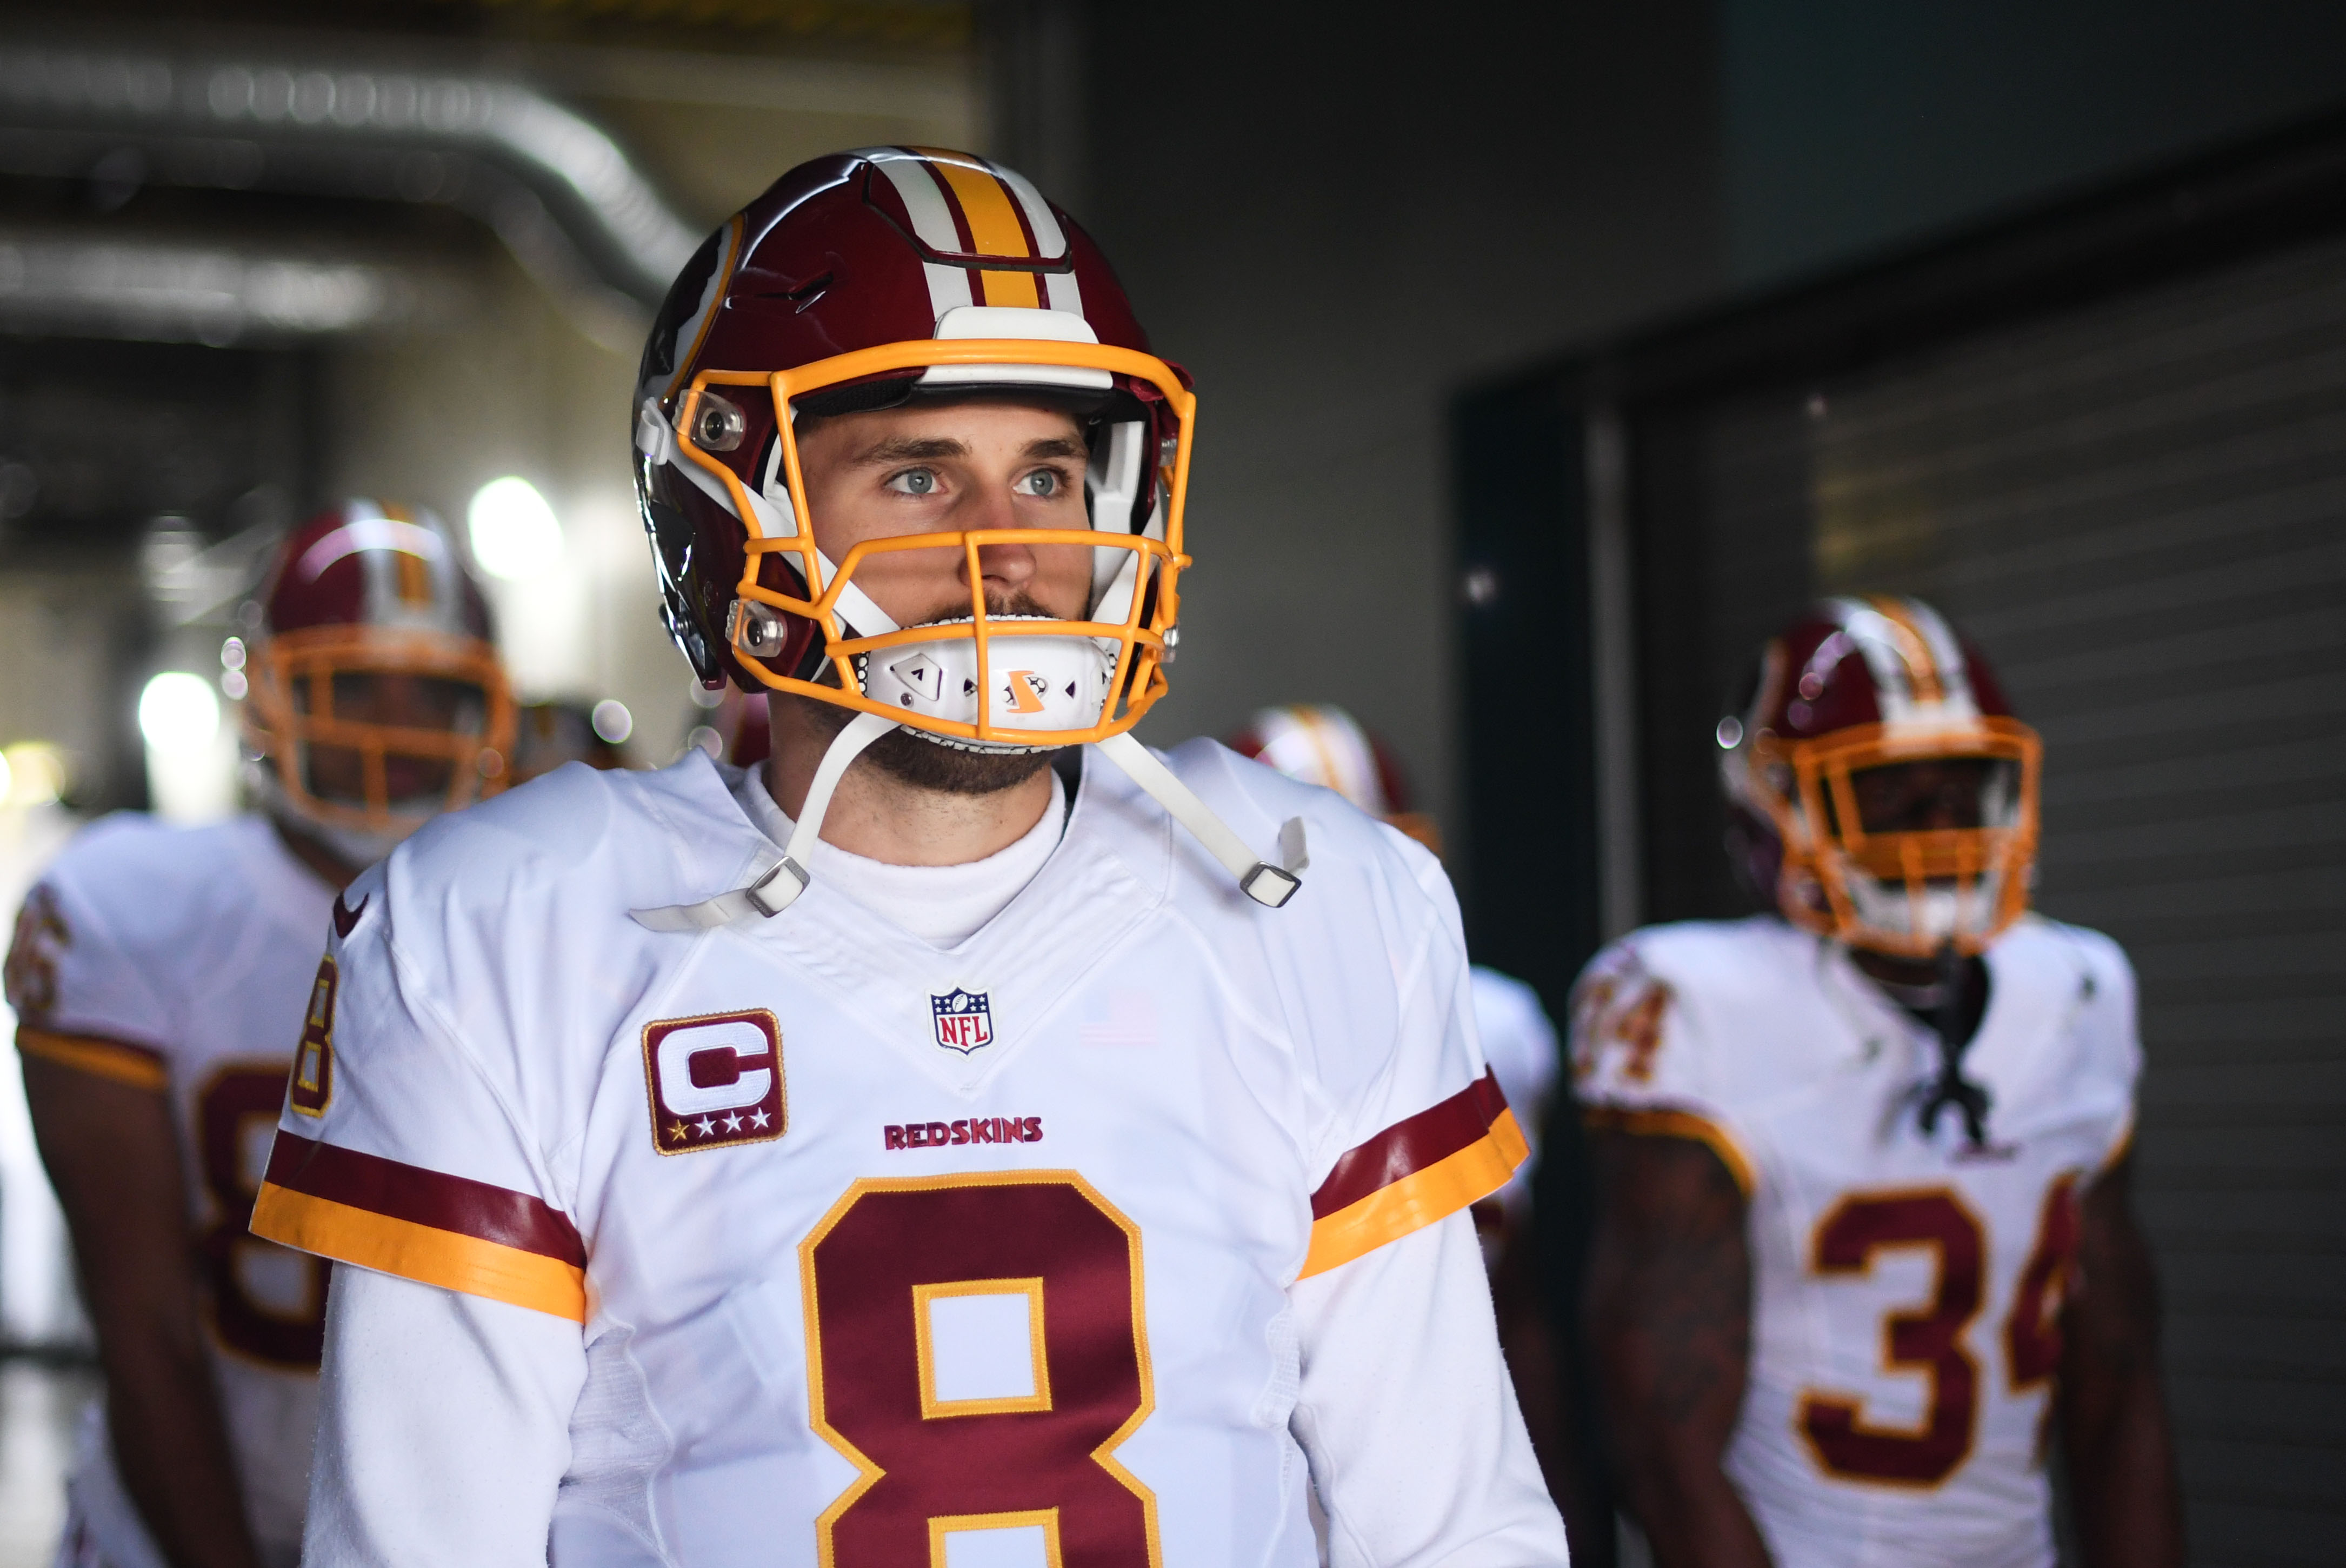 Dec 11, 2016; Philadelphia, PA, USA; Washington Redskins quarterback Kirk Cousins (8) before warmups against the Philadelphia Eagles at Lincoln Financial Field. Mandatory Credit: James Lang-USA TODAY Sports